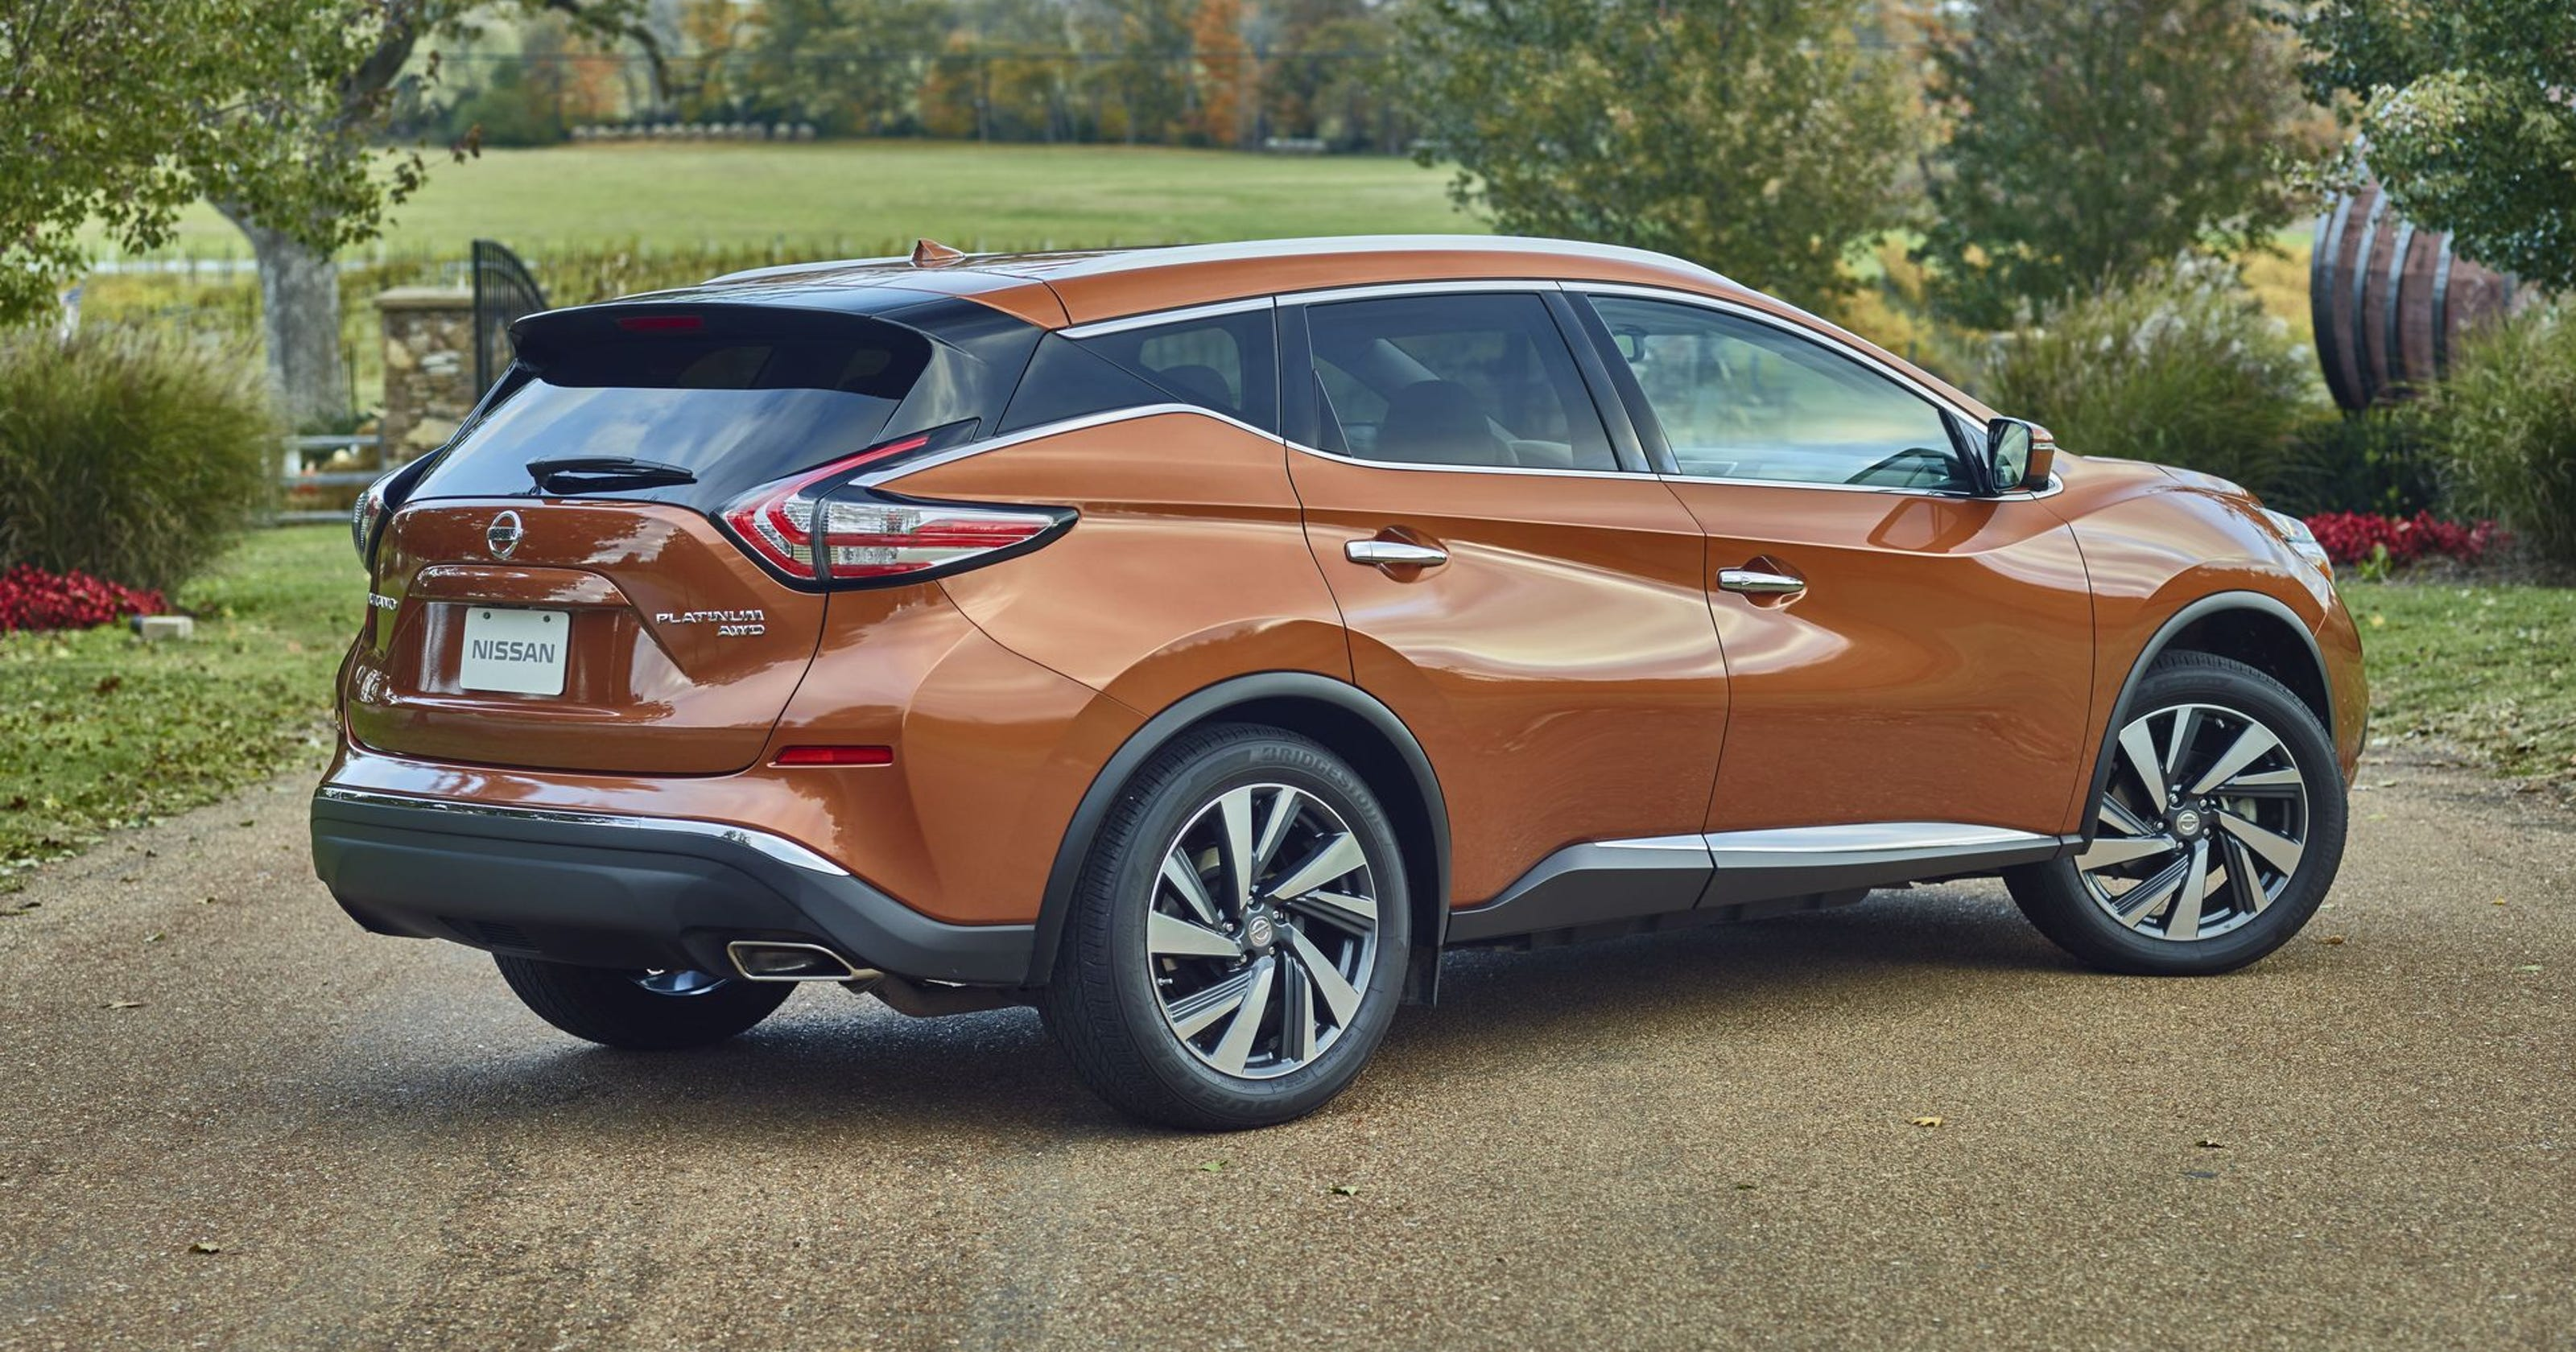 Auto review: 2015 Nissan Murano gives your heart a jolt